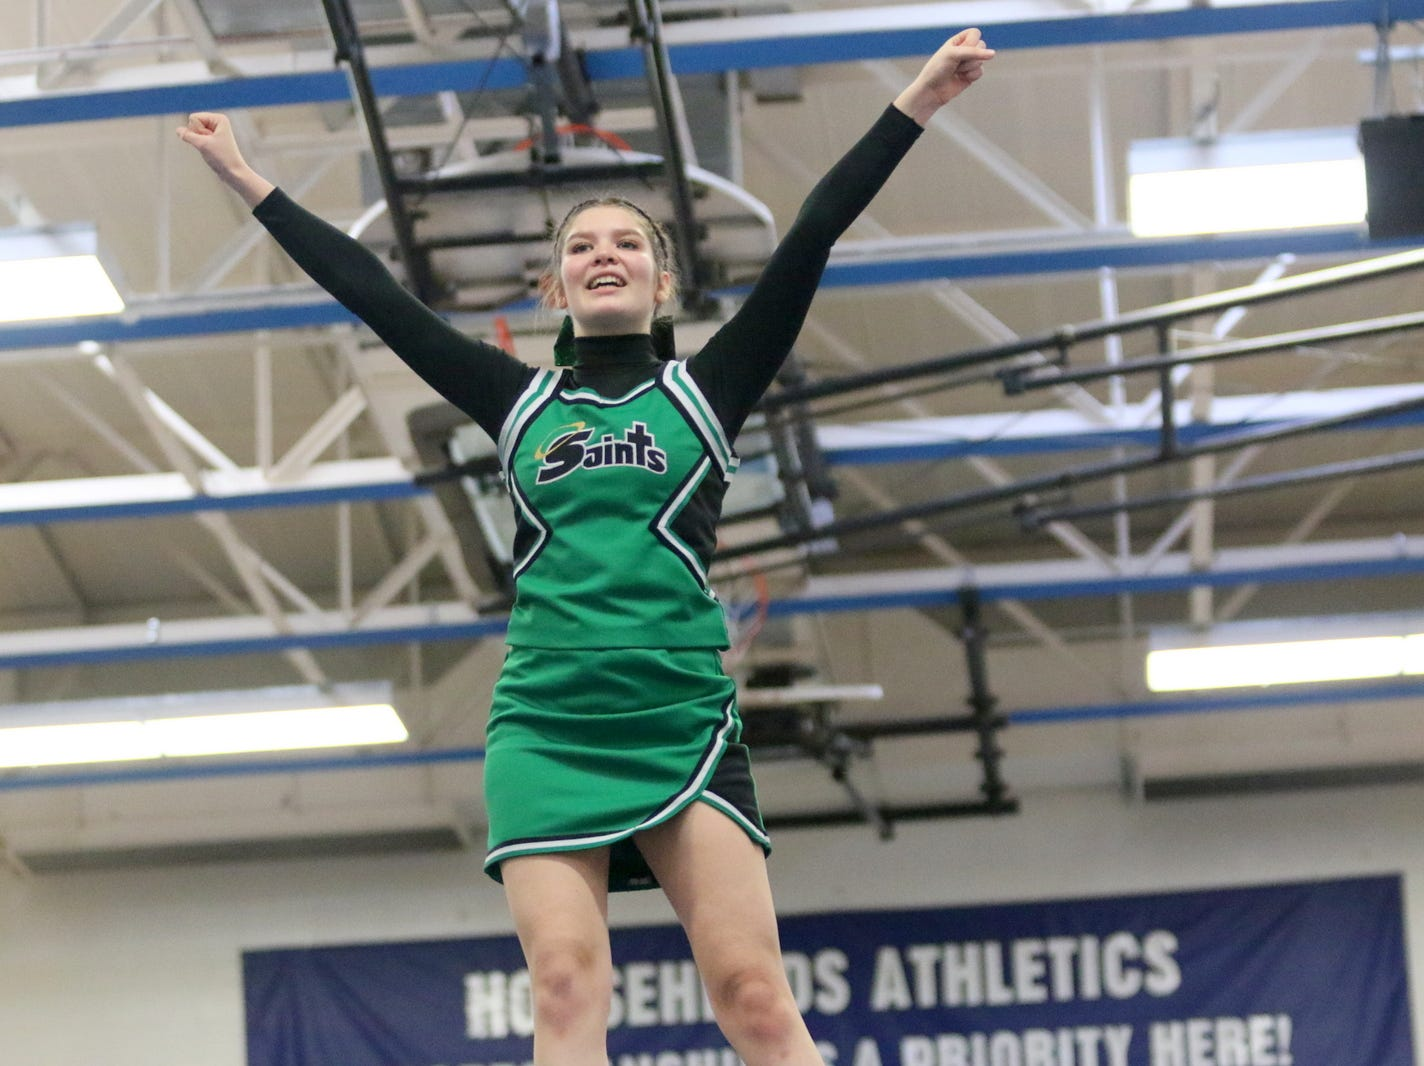 Binghamton Seton Catholic Central varsity cheerleaders compete at the STAC Winter Cheer Championships on Feb. 16, 2019 at Horseheads Middle School.